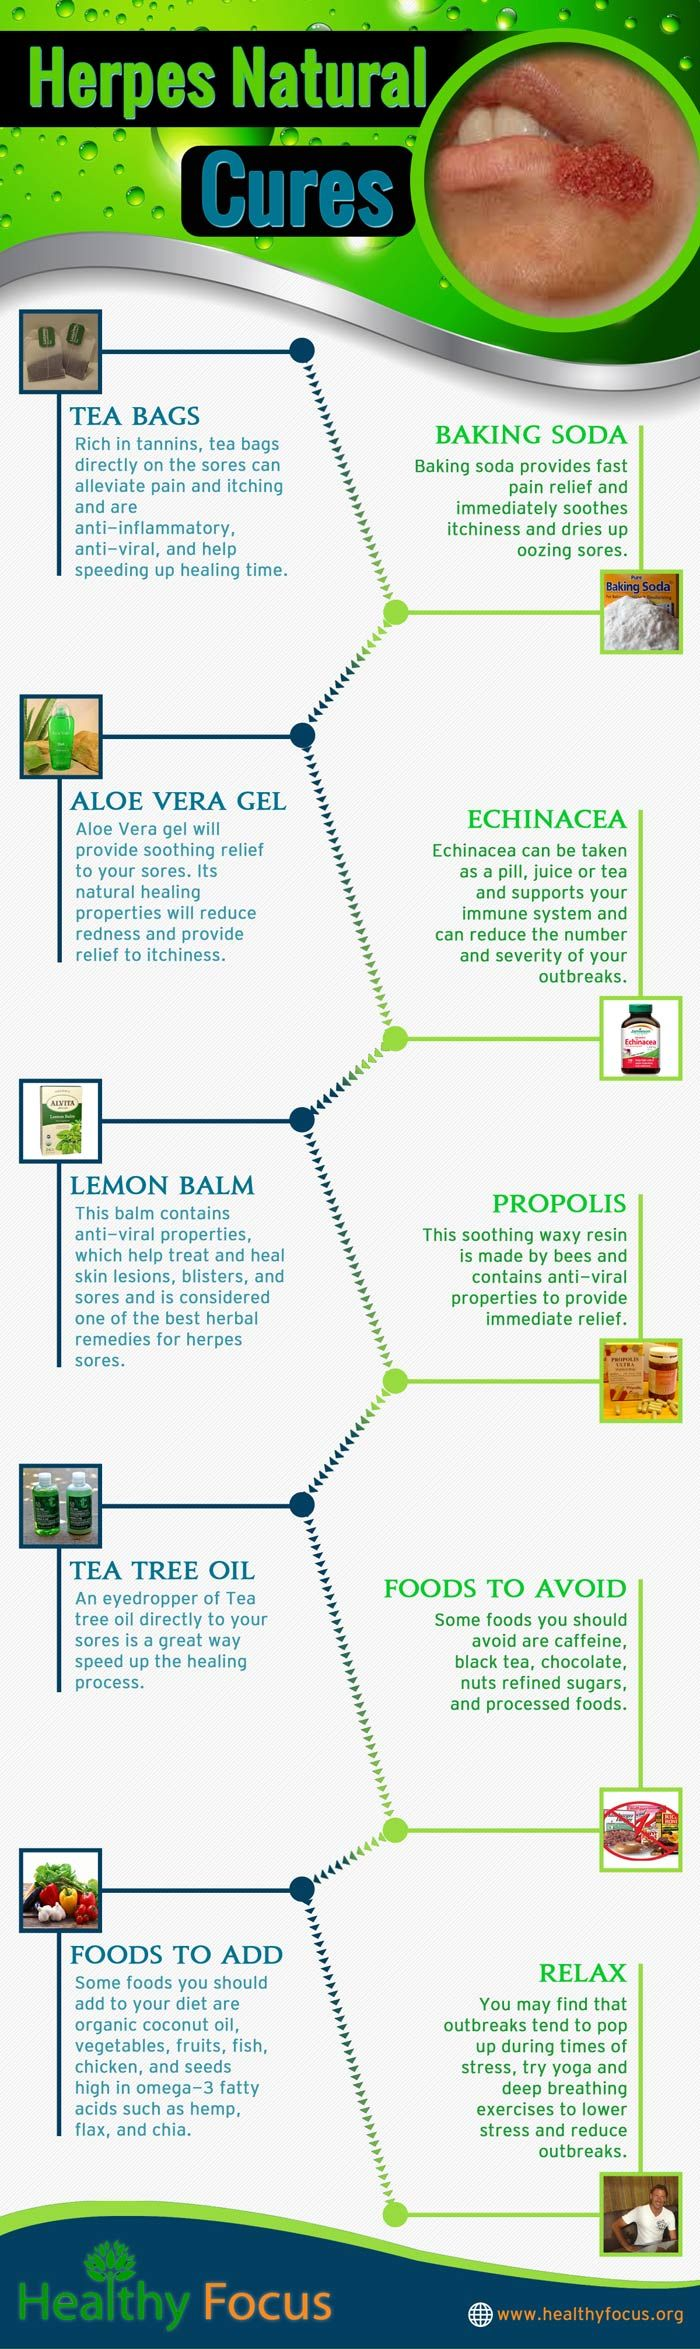 Propolis, Tea Tree Oil, and Lemon Balm are antivirals to keep virus at bay. Aloe vera gel, Chinese Rhubarb and domeboro powder help with healing.